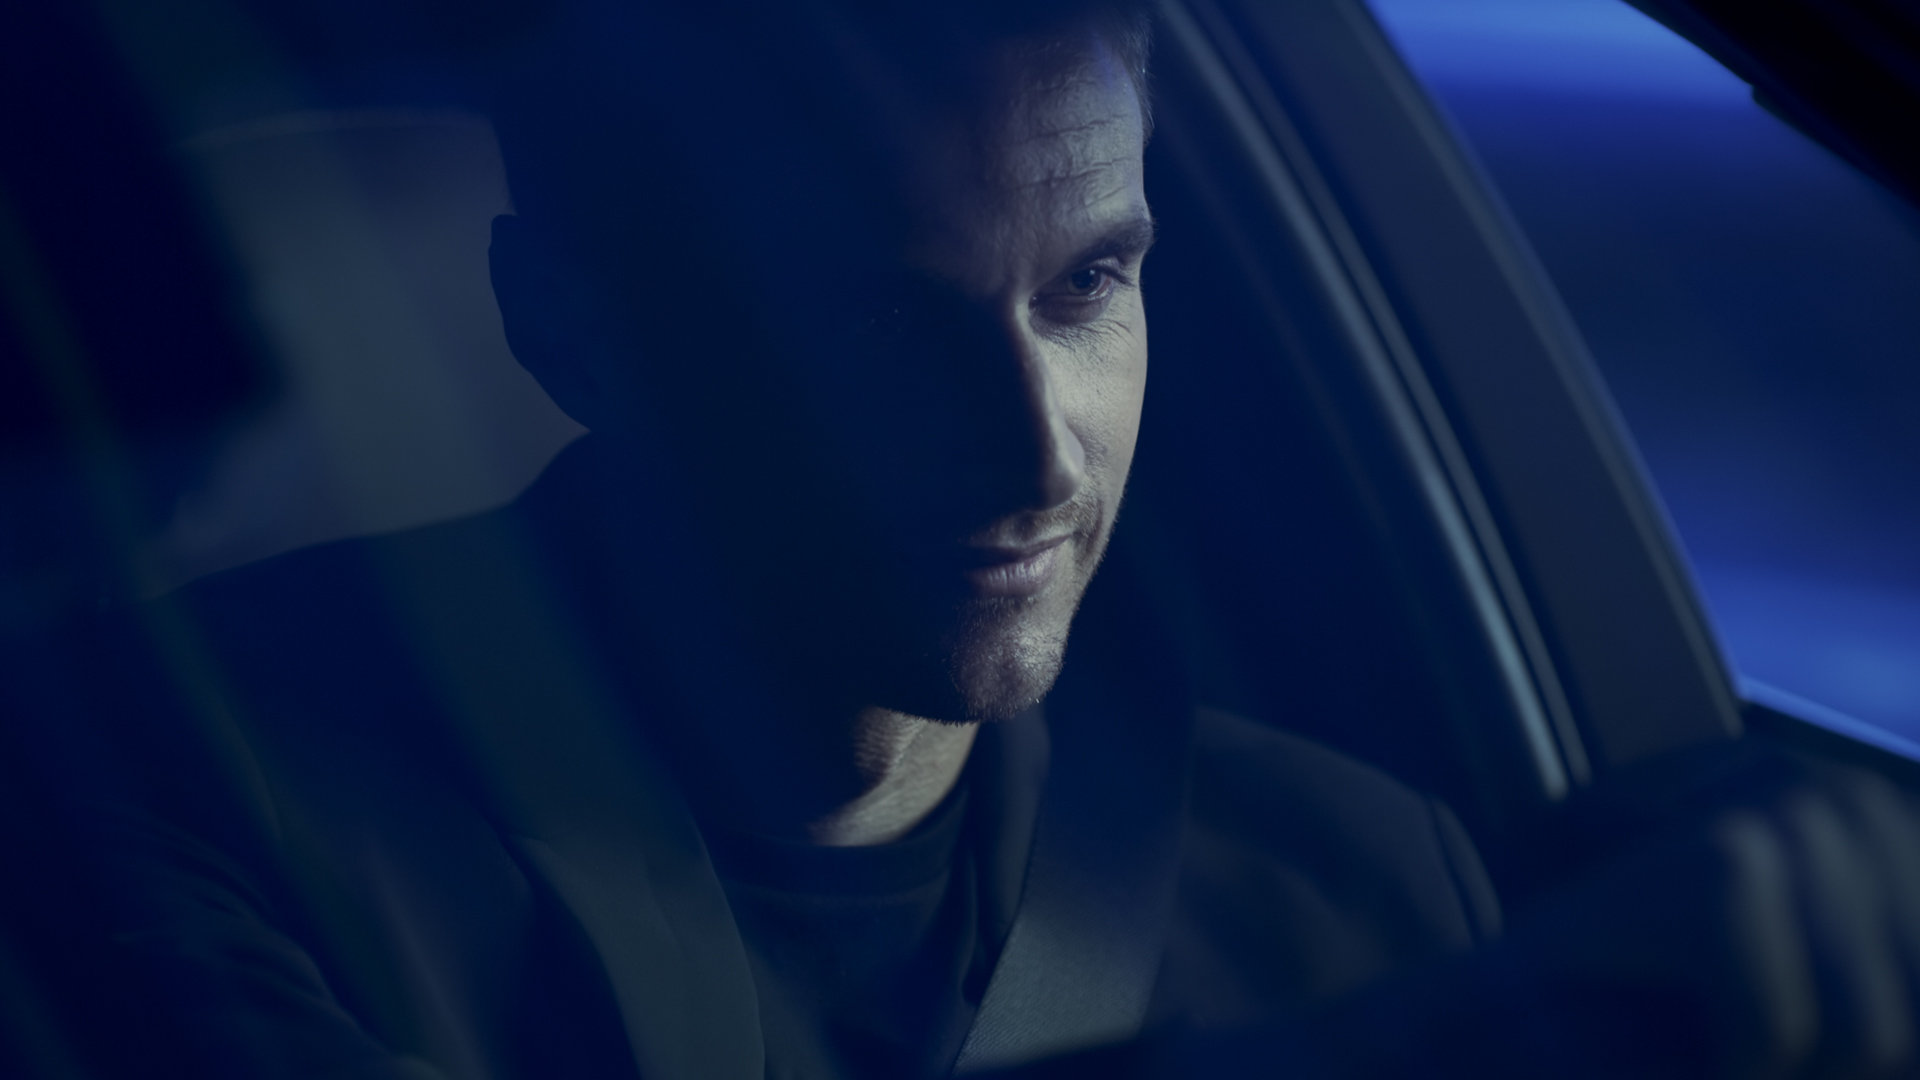 Screenshot of man driving Vinfast Lux A2.0 from 'Vinfast - Between Worlds' TV commercial